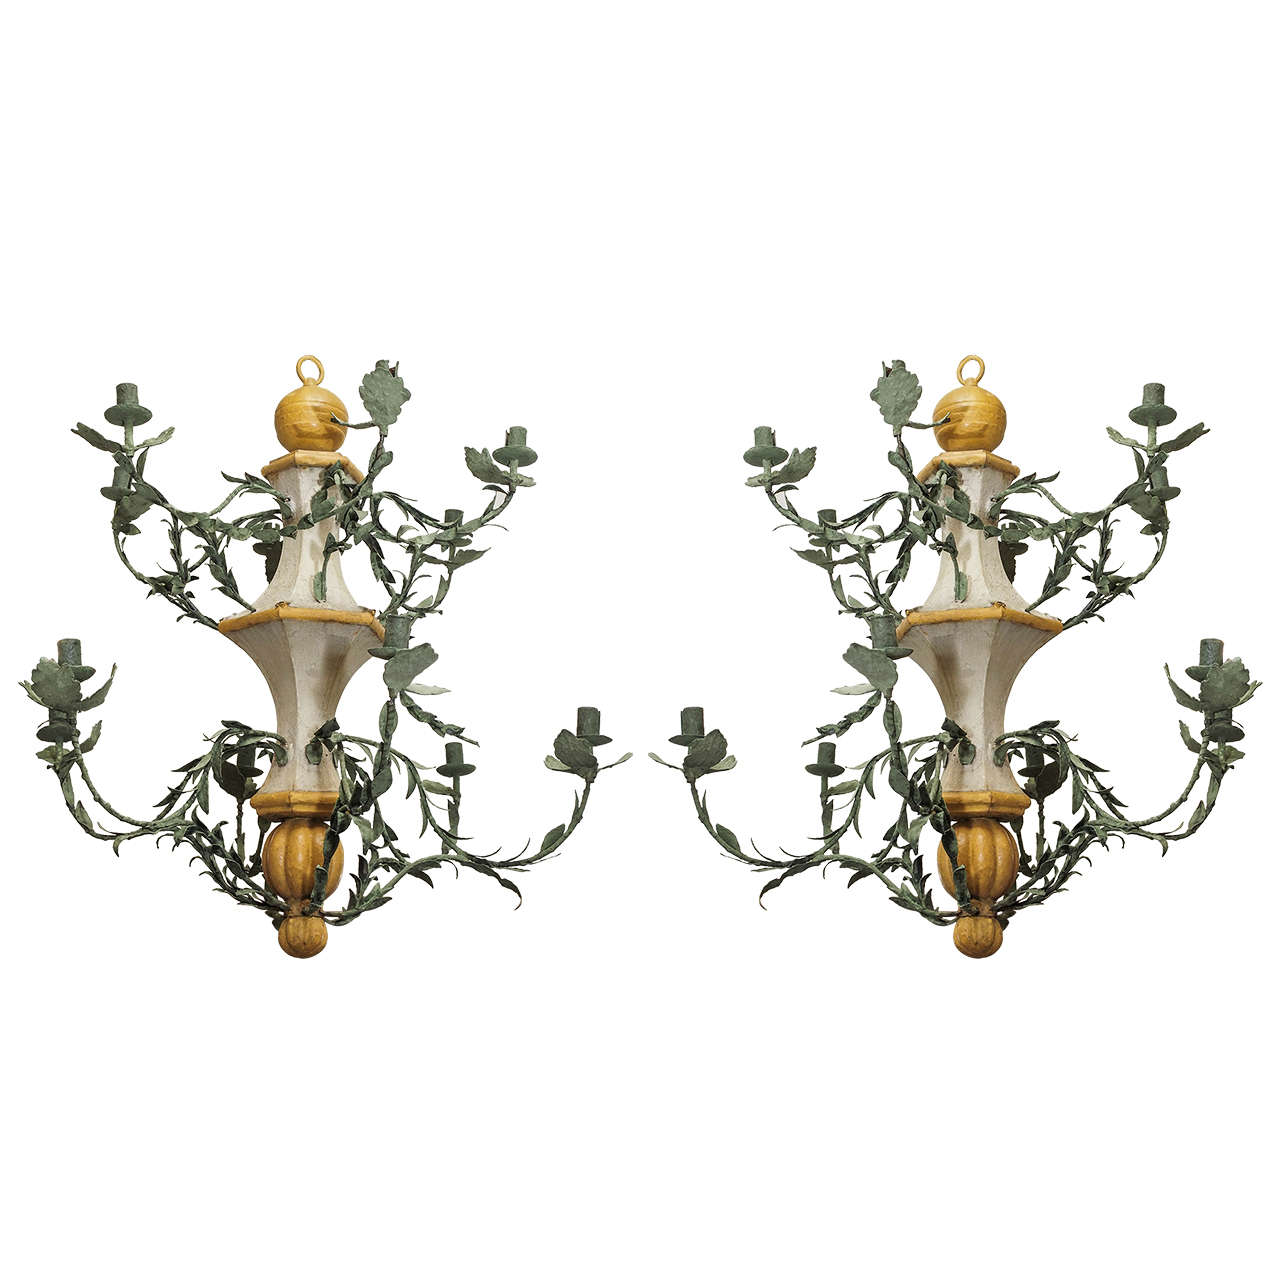 Pair of Late 18th Century L'orangerie Chandeliers For Sale